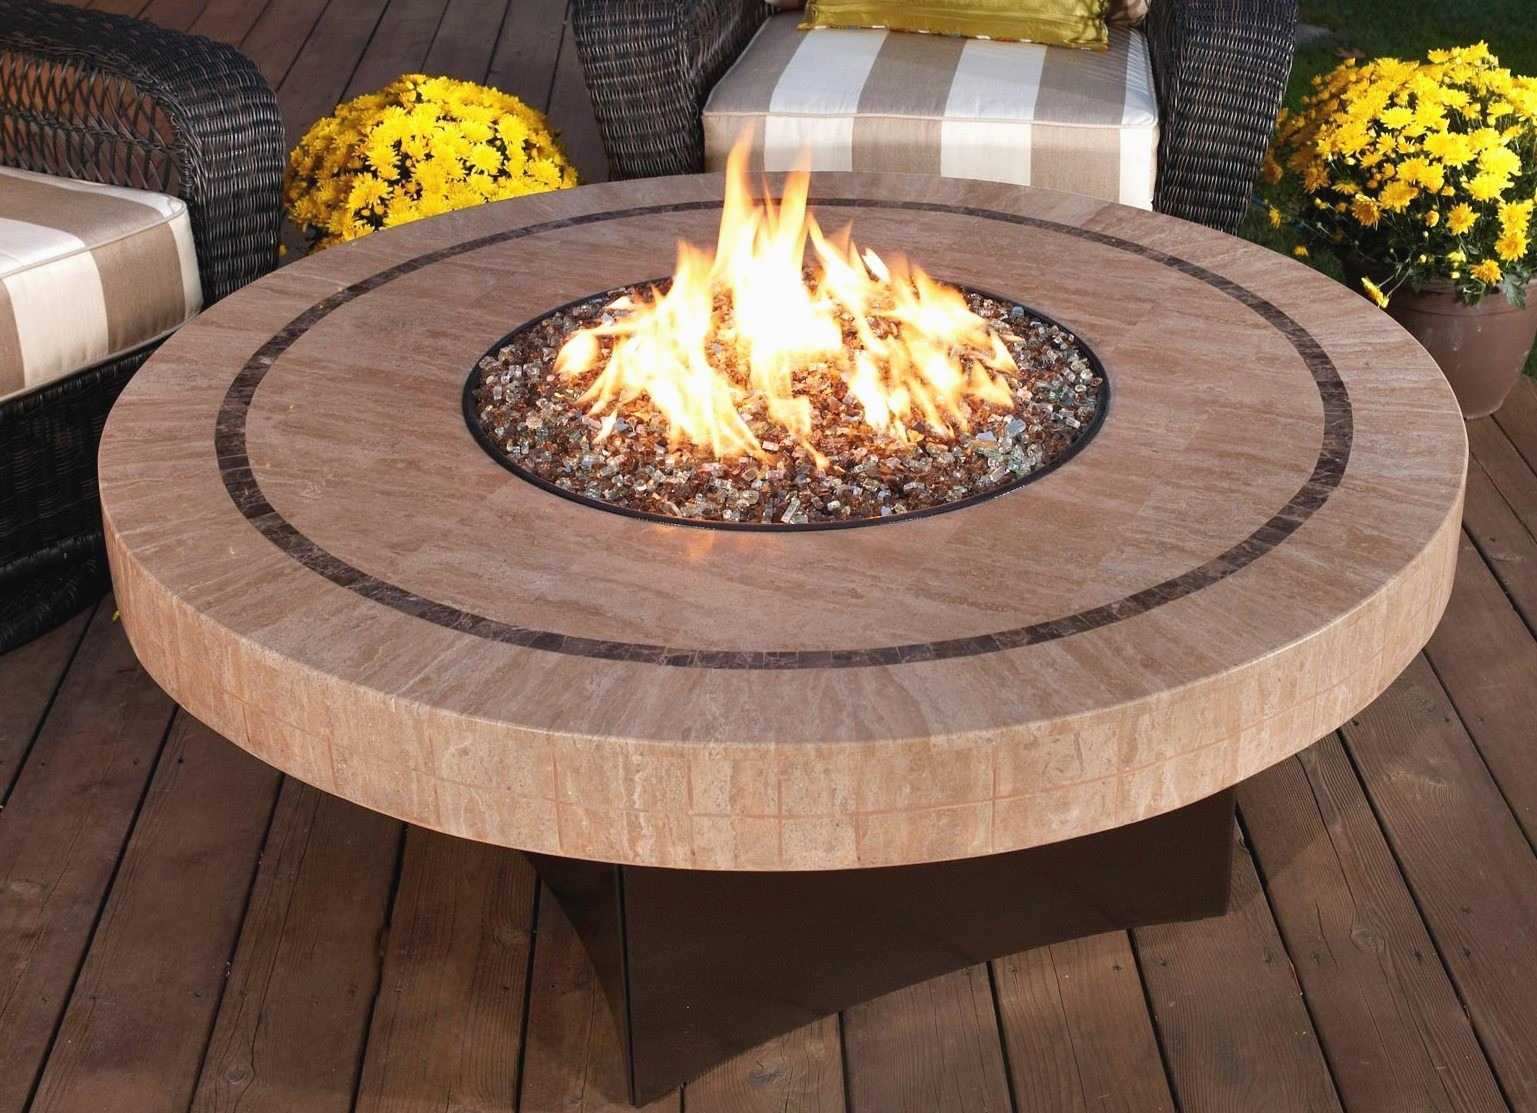 Natural Gas Fire Pit For Deck Decks Ideas - Outdoor gas fire pit table top